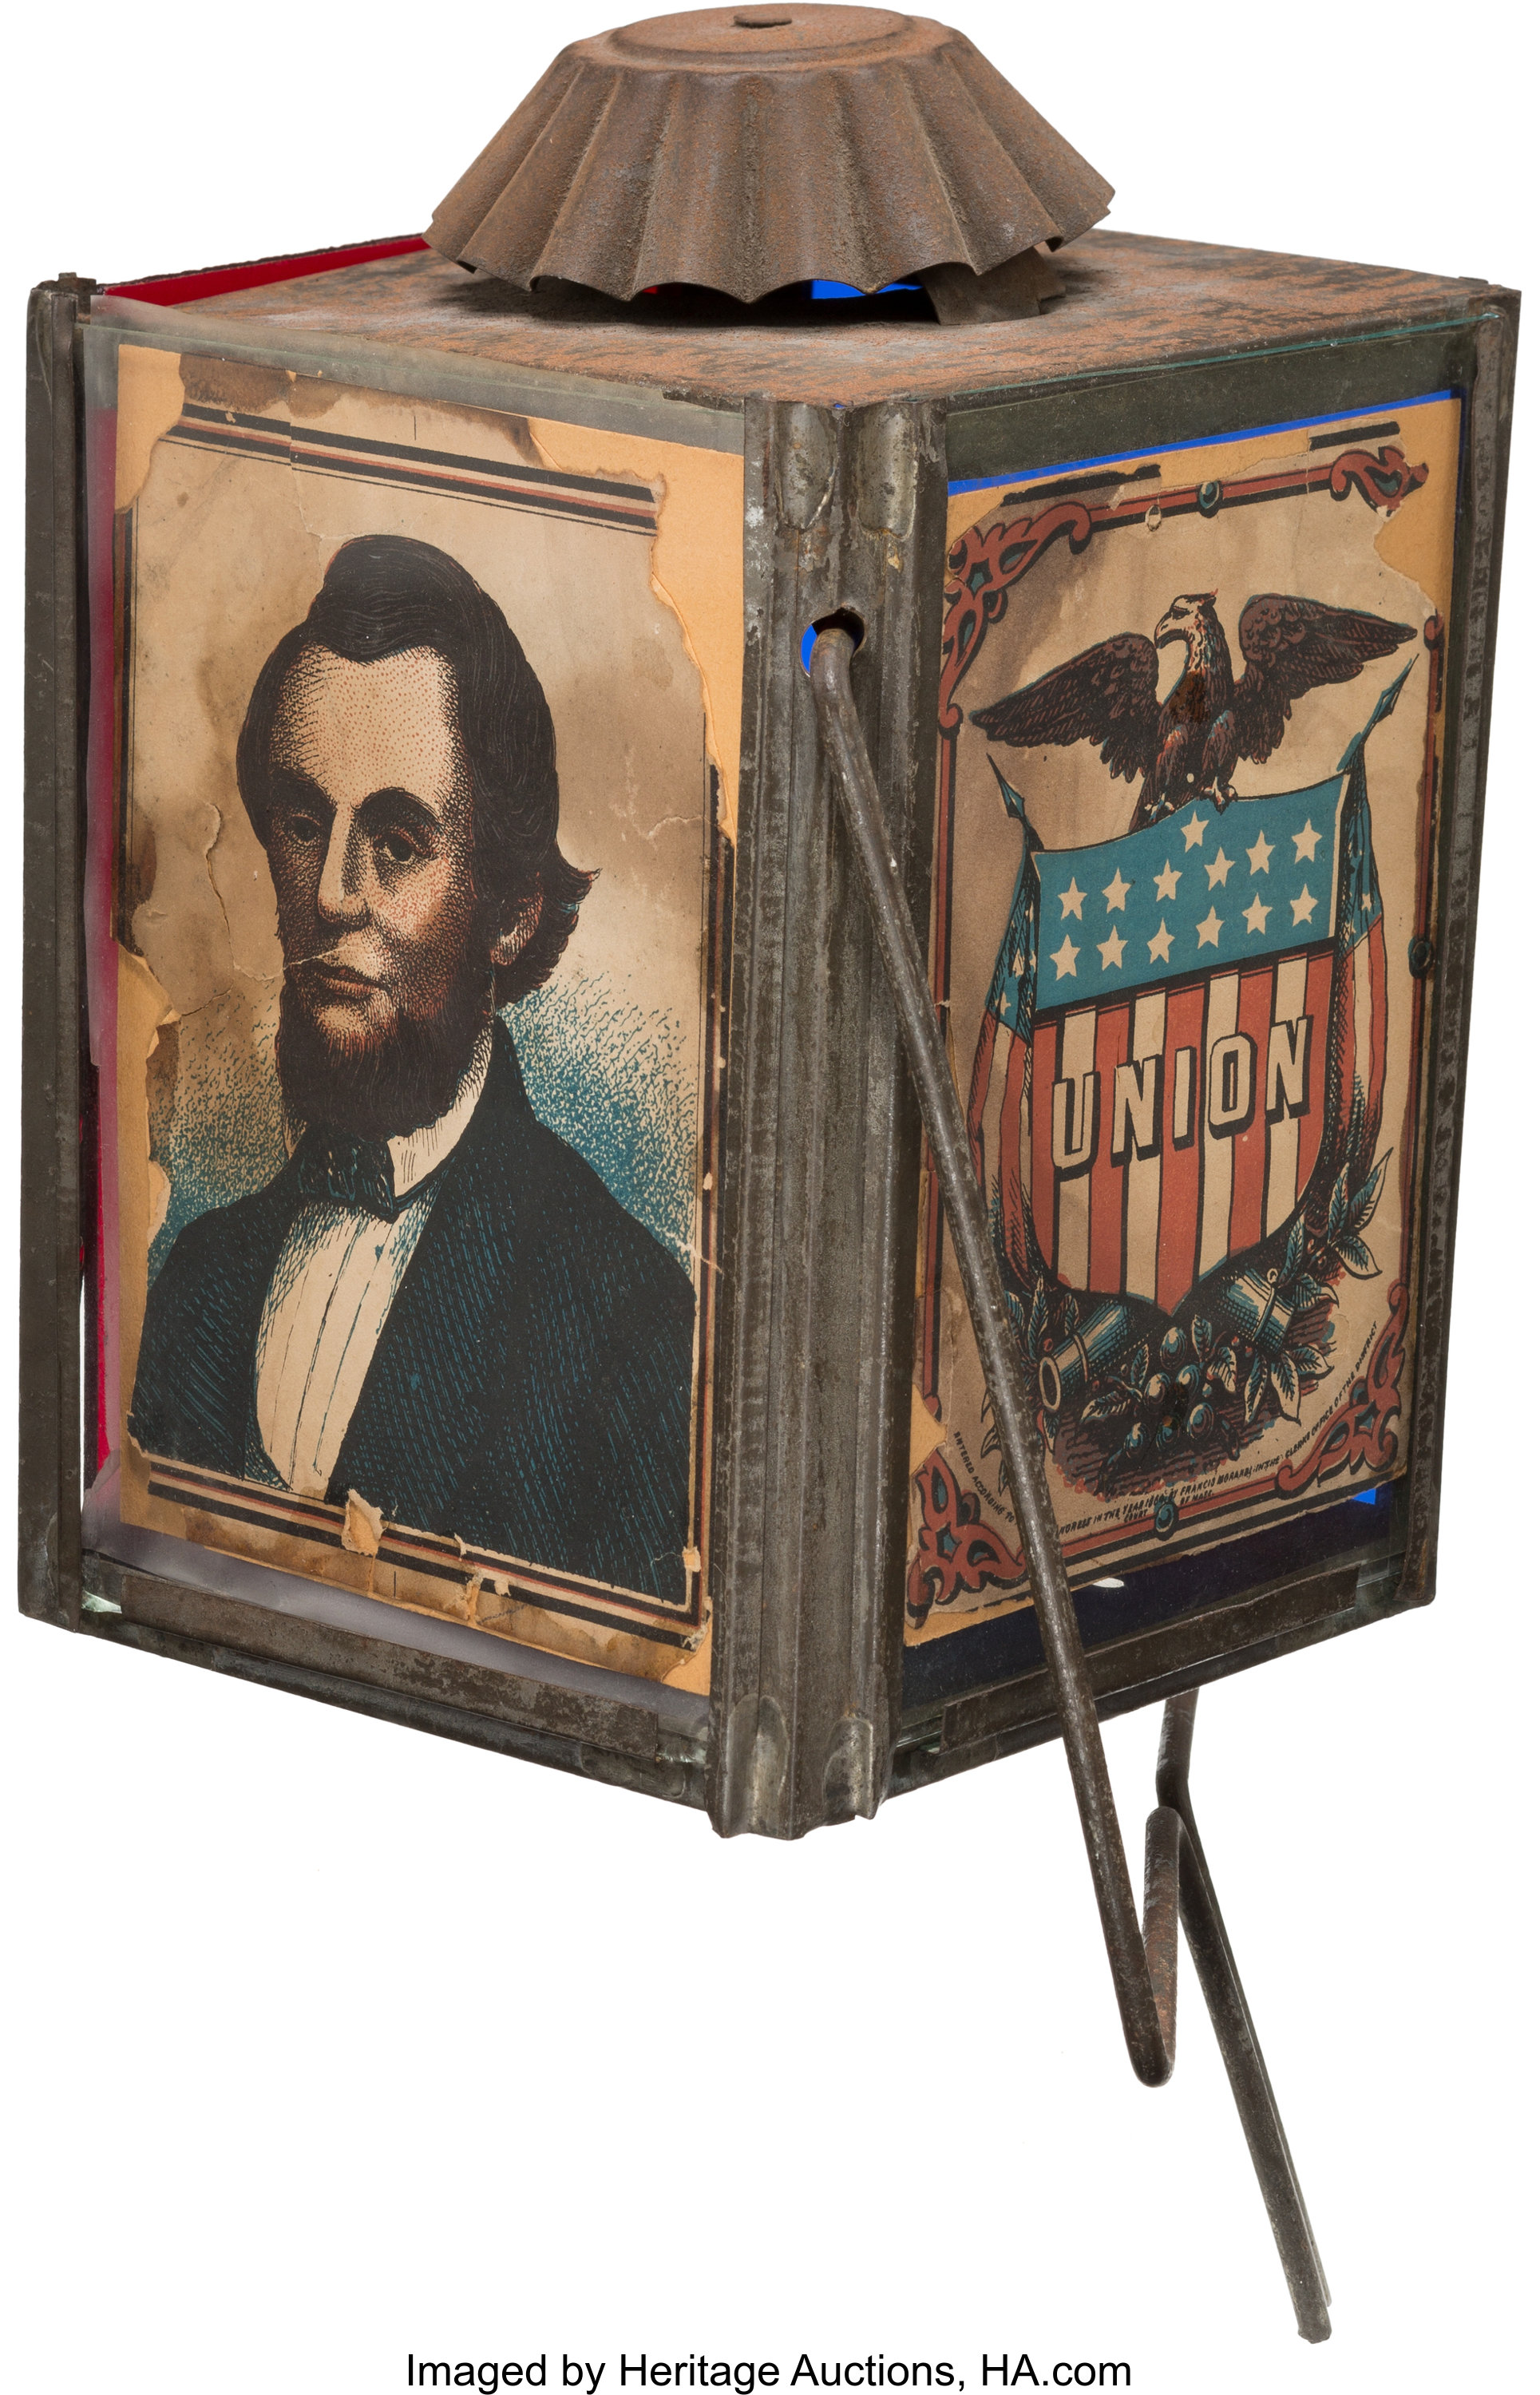 "This rare circa 1860s parade lantern features an image of Abraham Lincoln on one panel and a spread-winged eagle sitting on a shield with the word ""union"" on it."